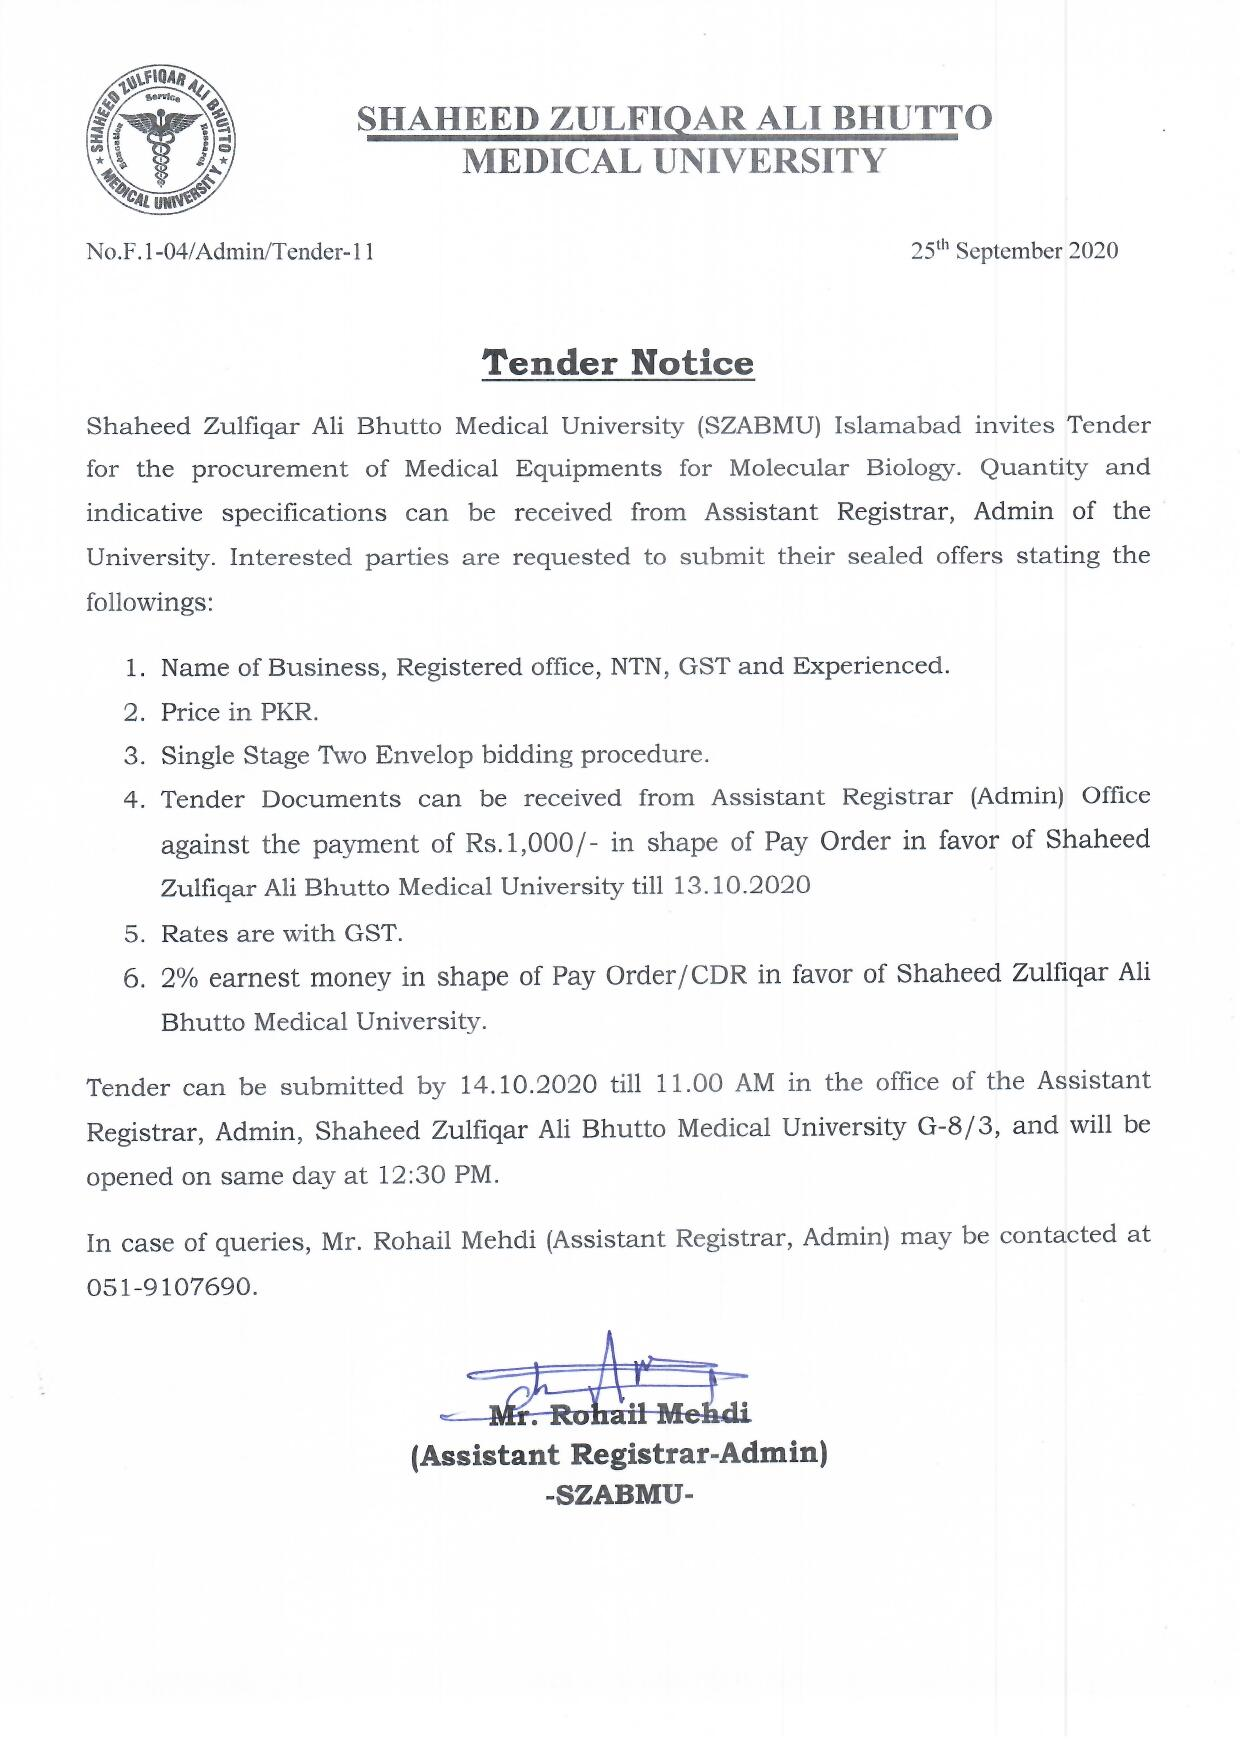 Tender Notice - Medical Equipment for Molecular Biology